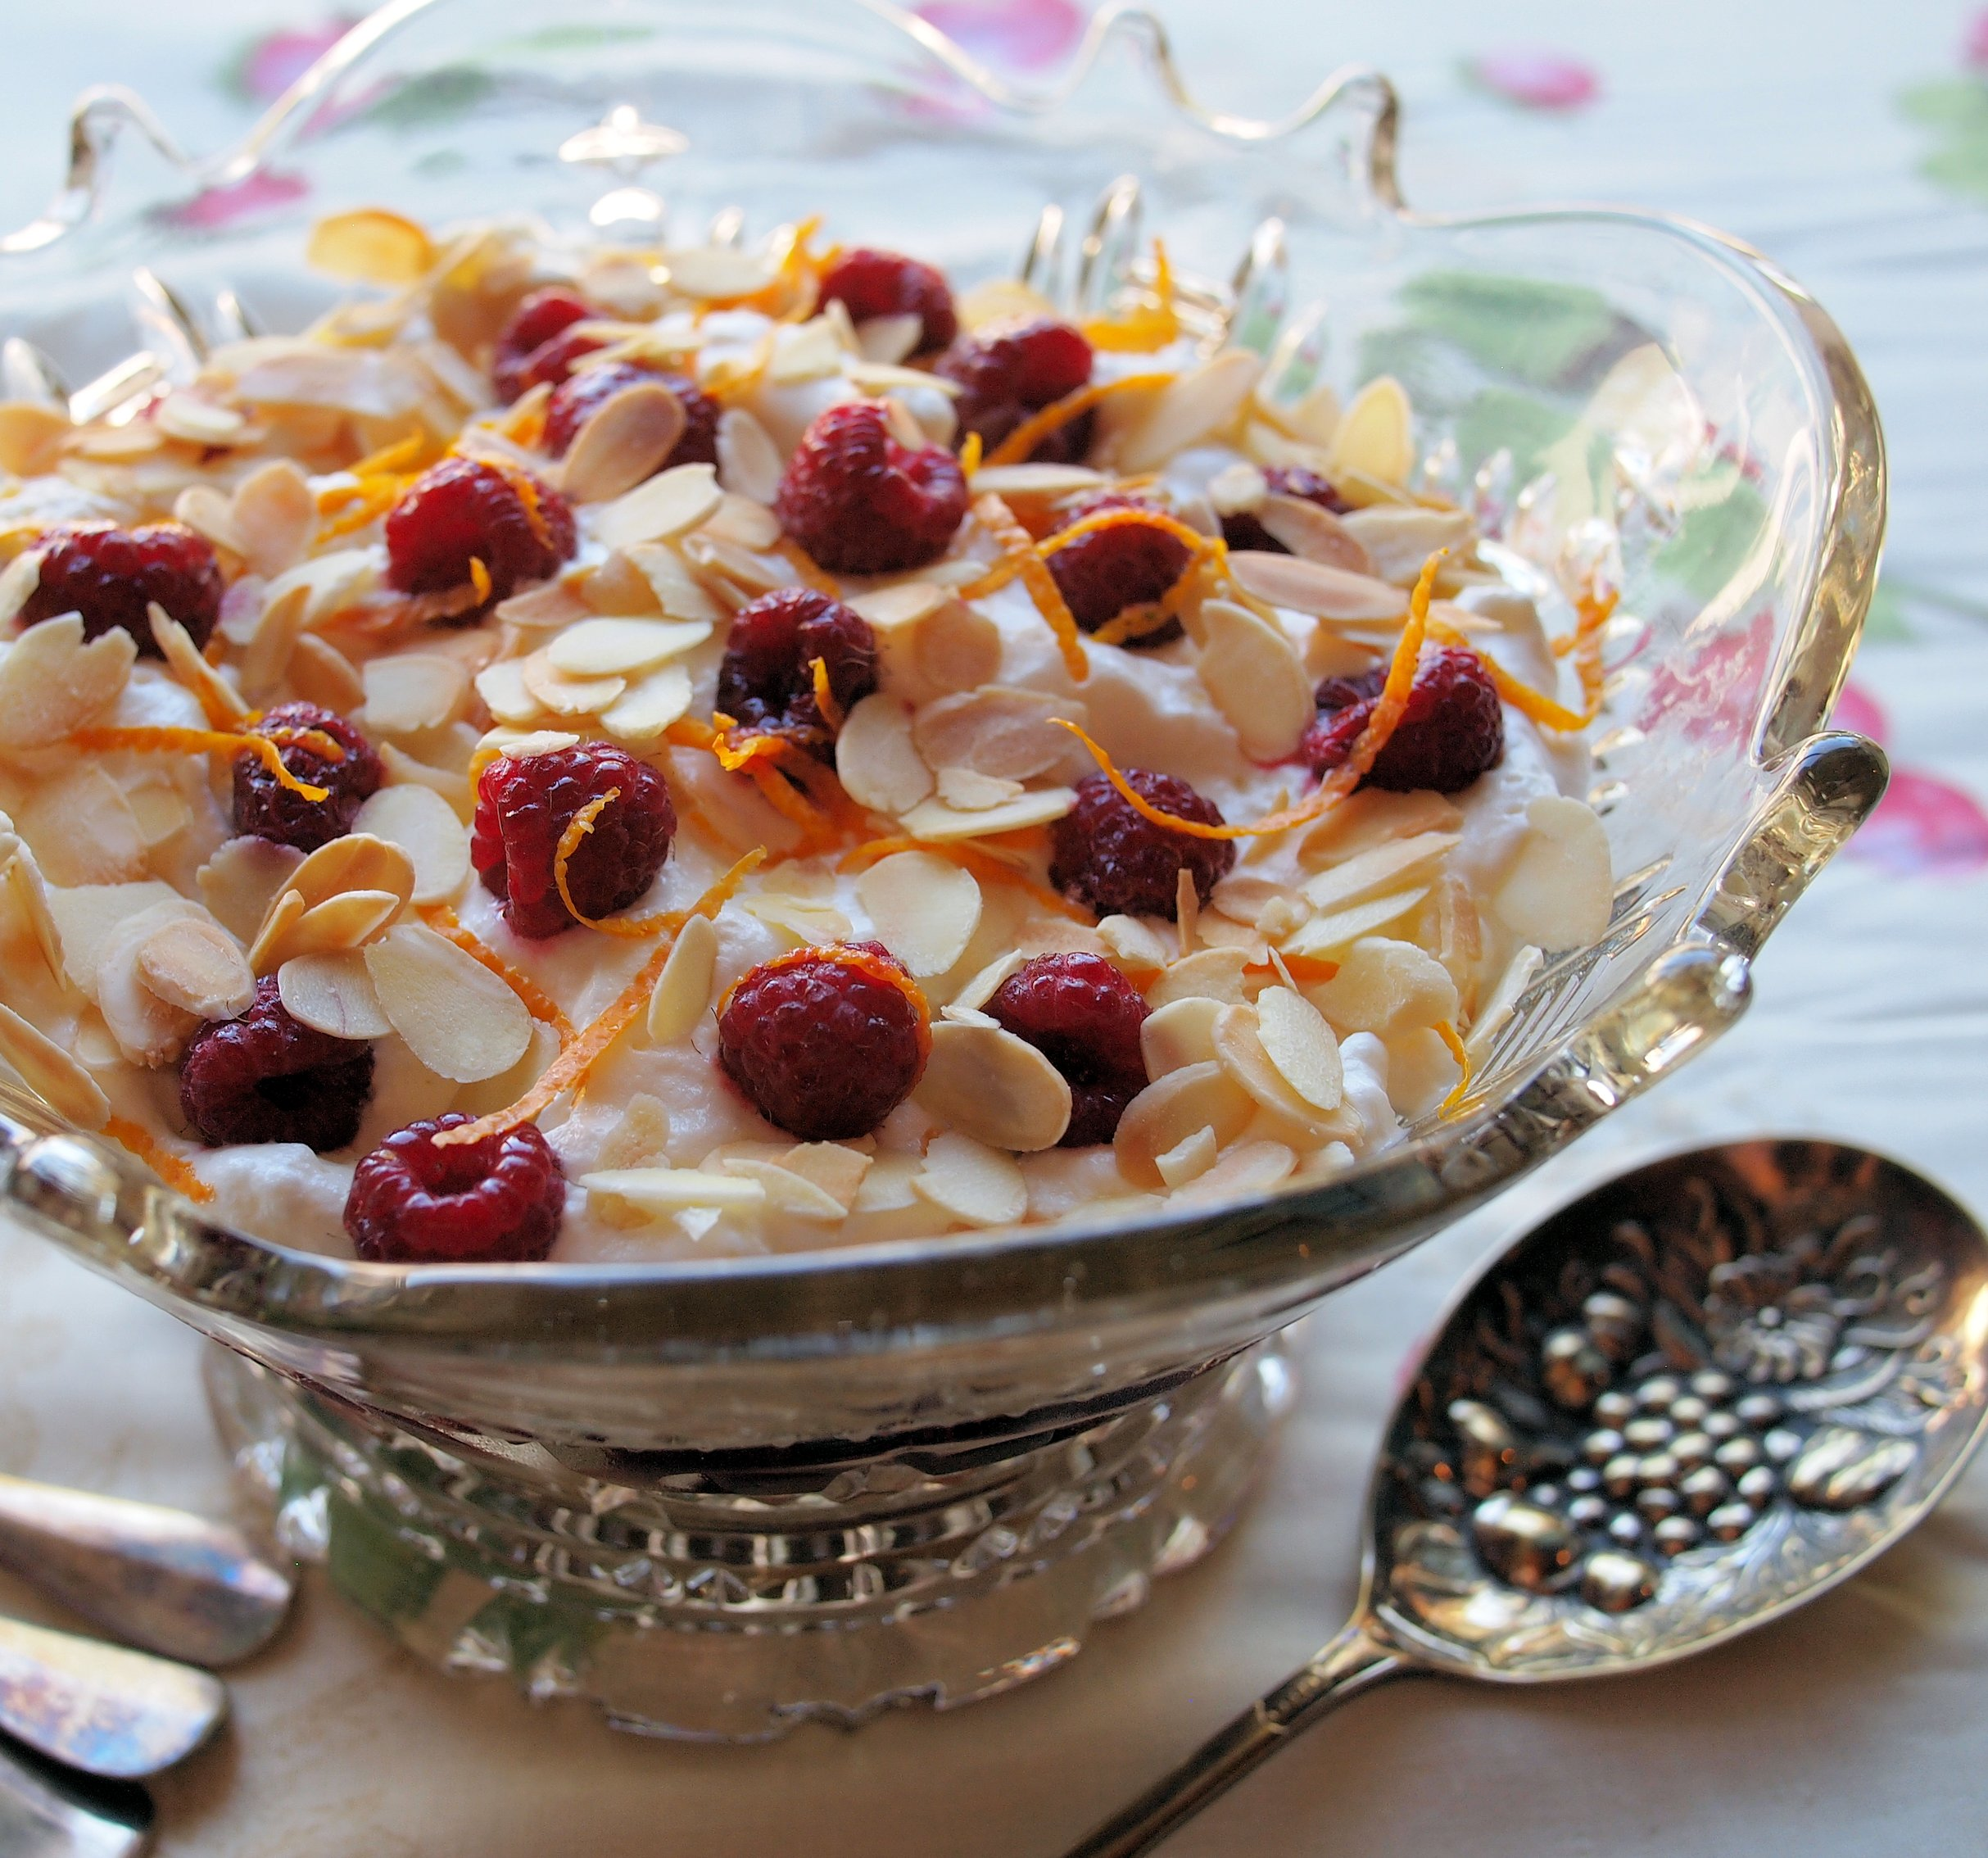 Whim Wham - A Scottish Regency Trifle